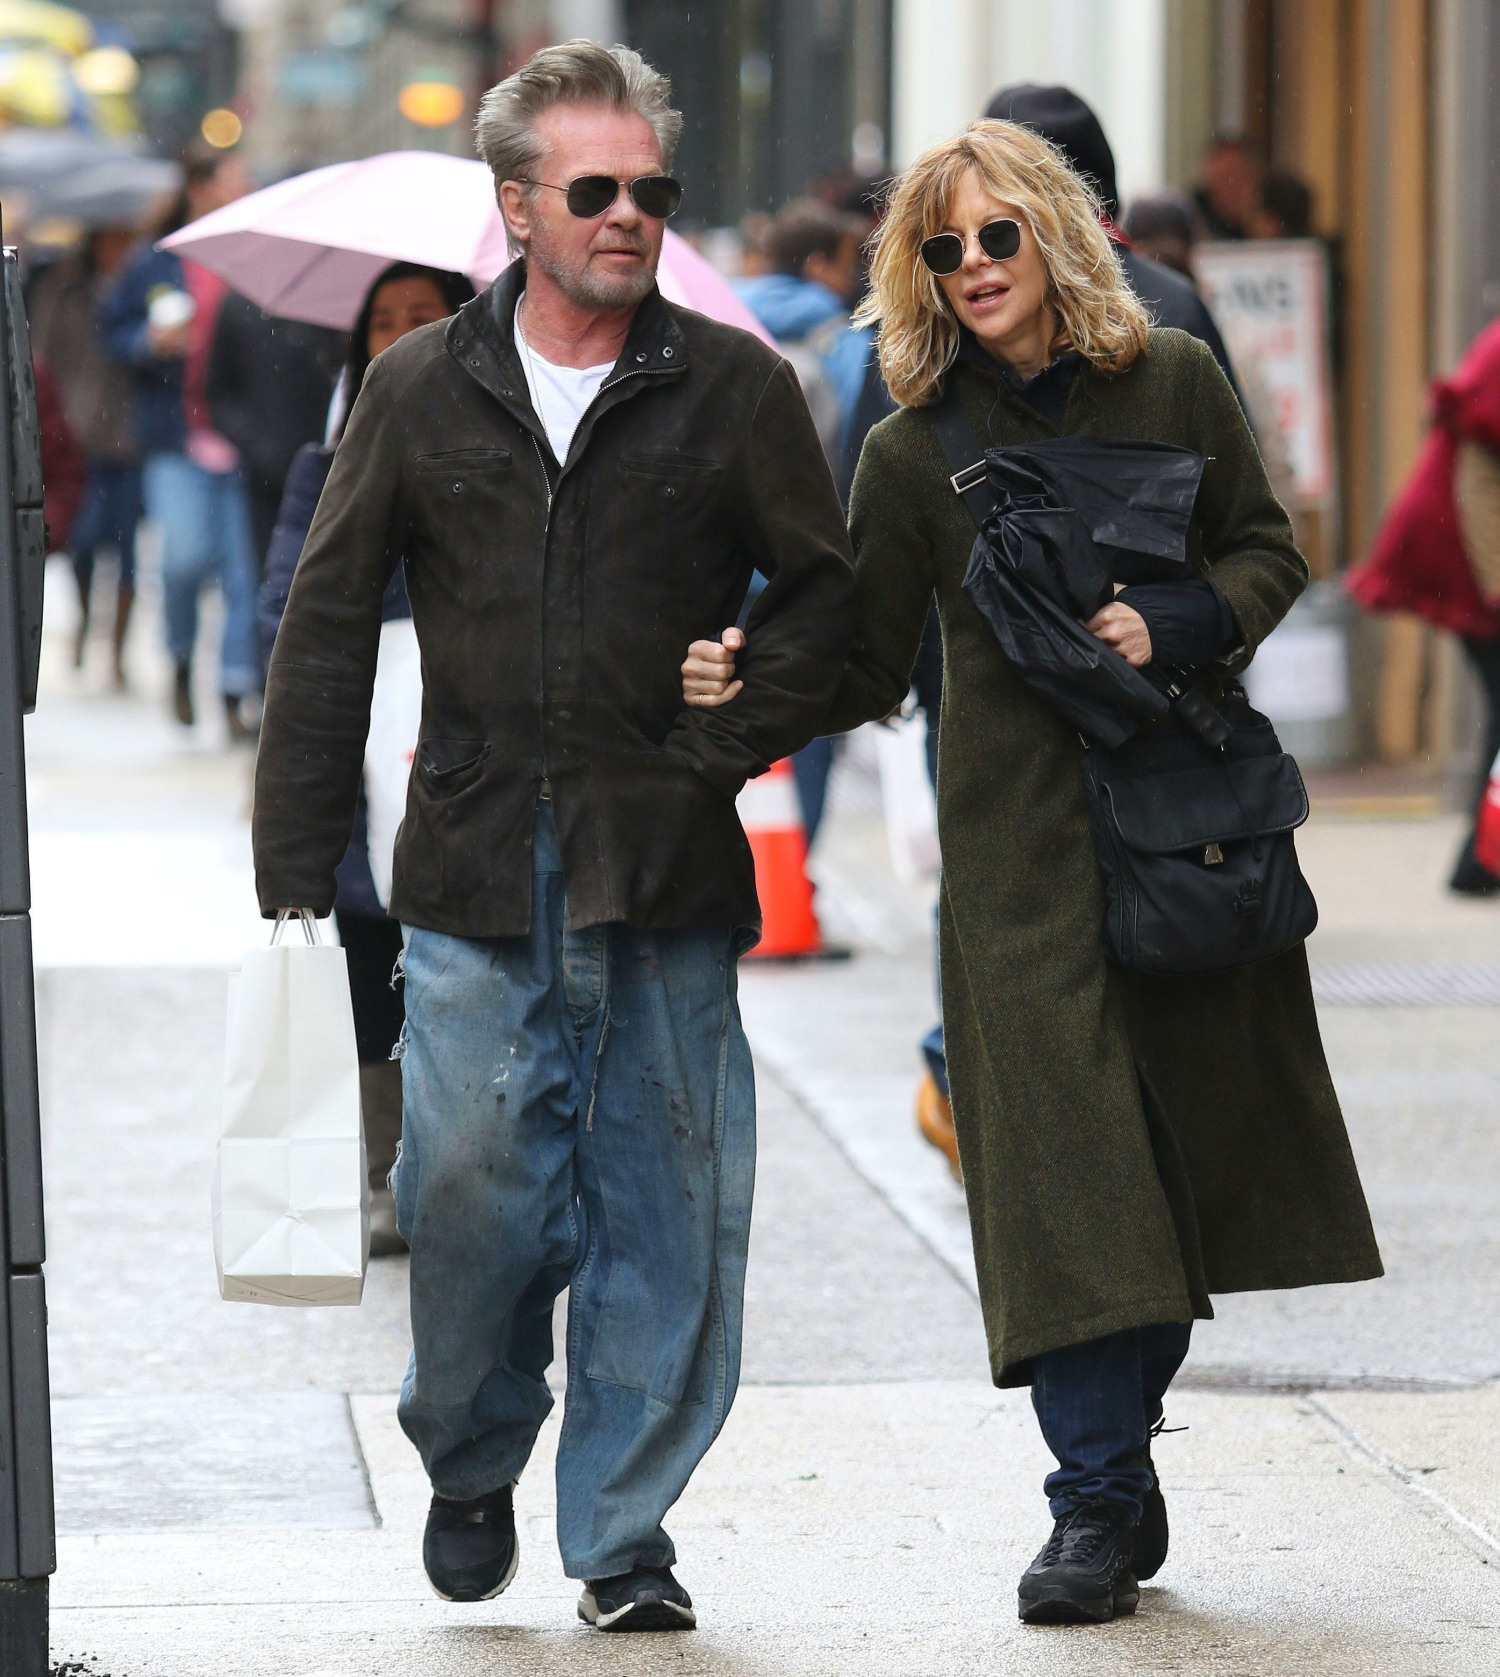 Meg Ryan and John Mellencamp take a romantic stroll arm-in-arm on a rainy day while shopping in Manhattan's SoHo neighborhood